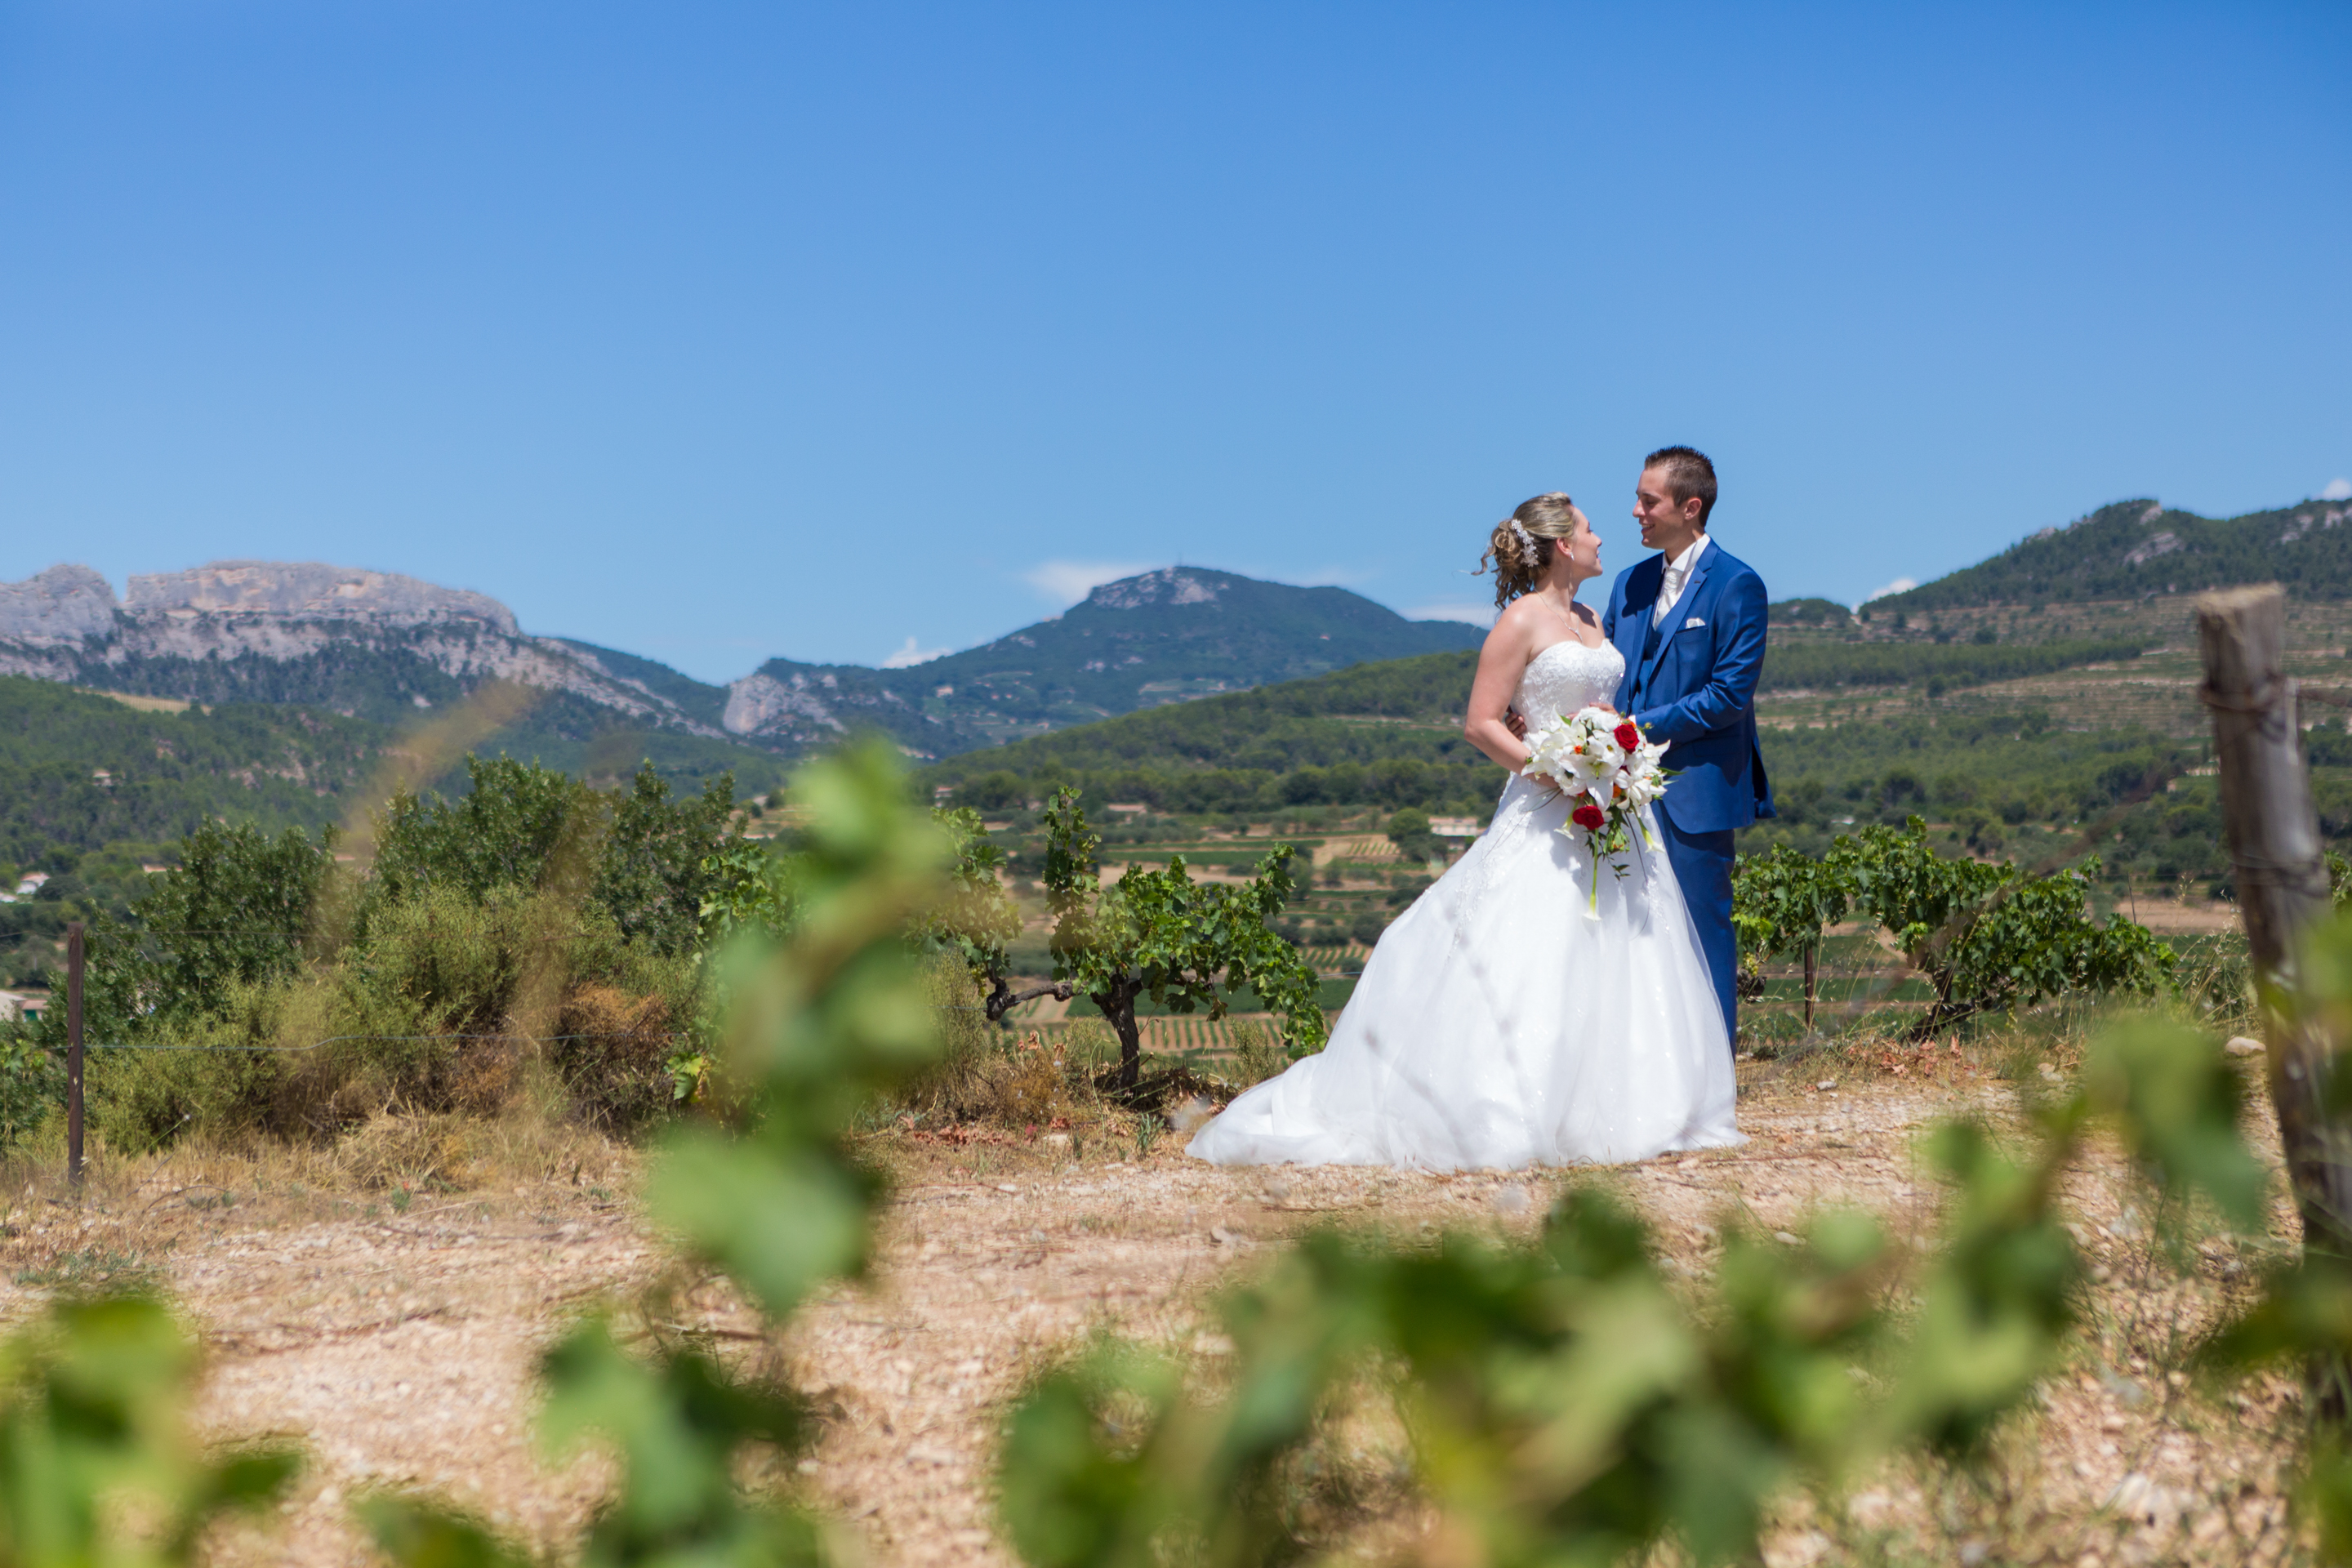 mariage vaucluse 84 14 06 30021